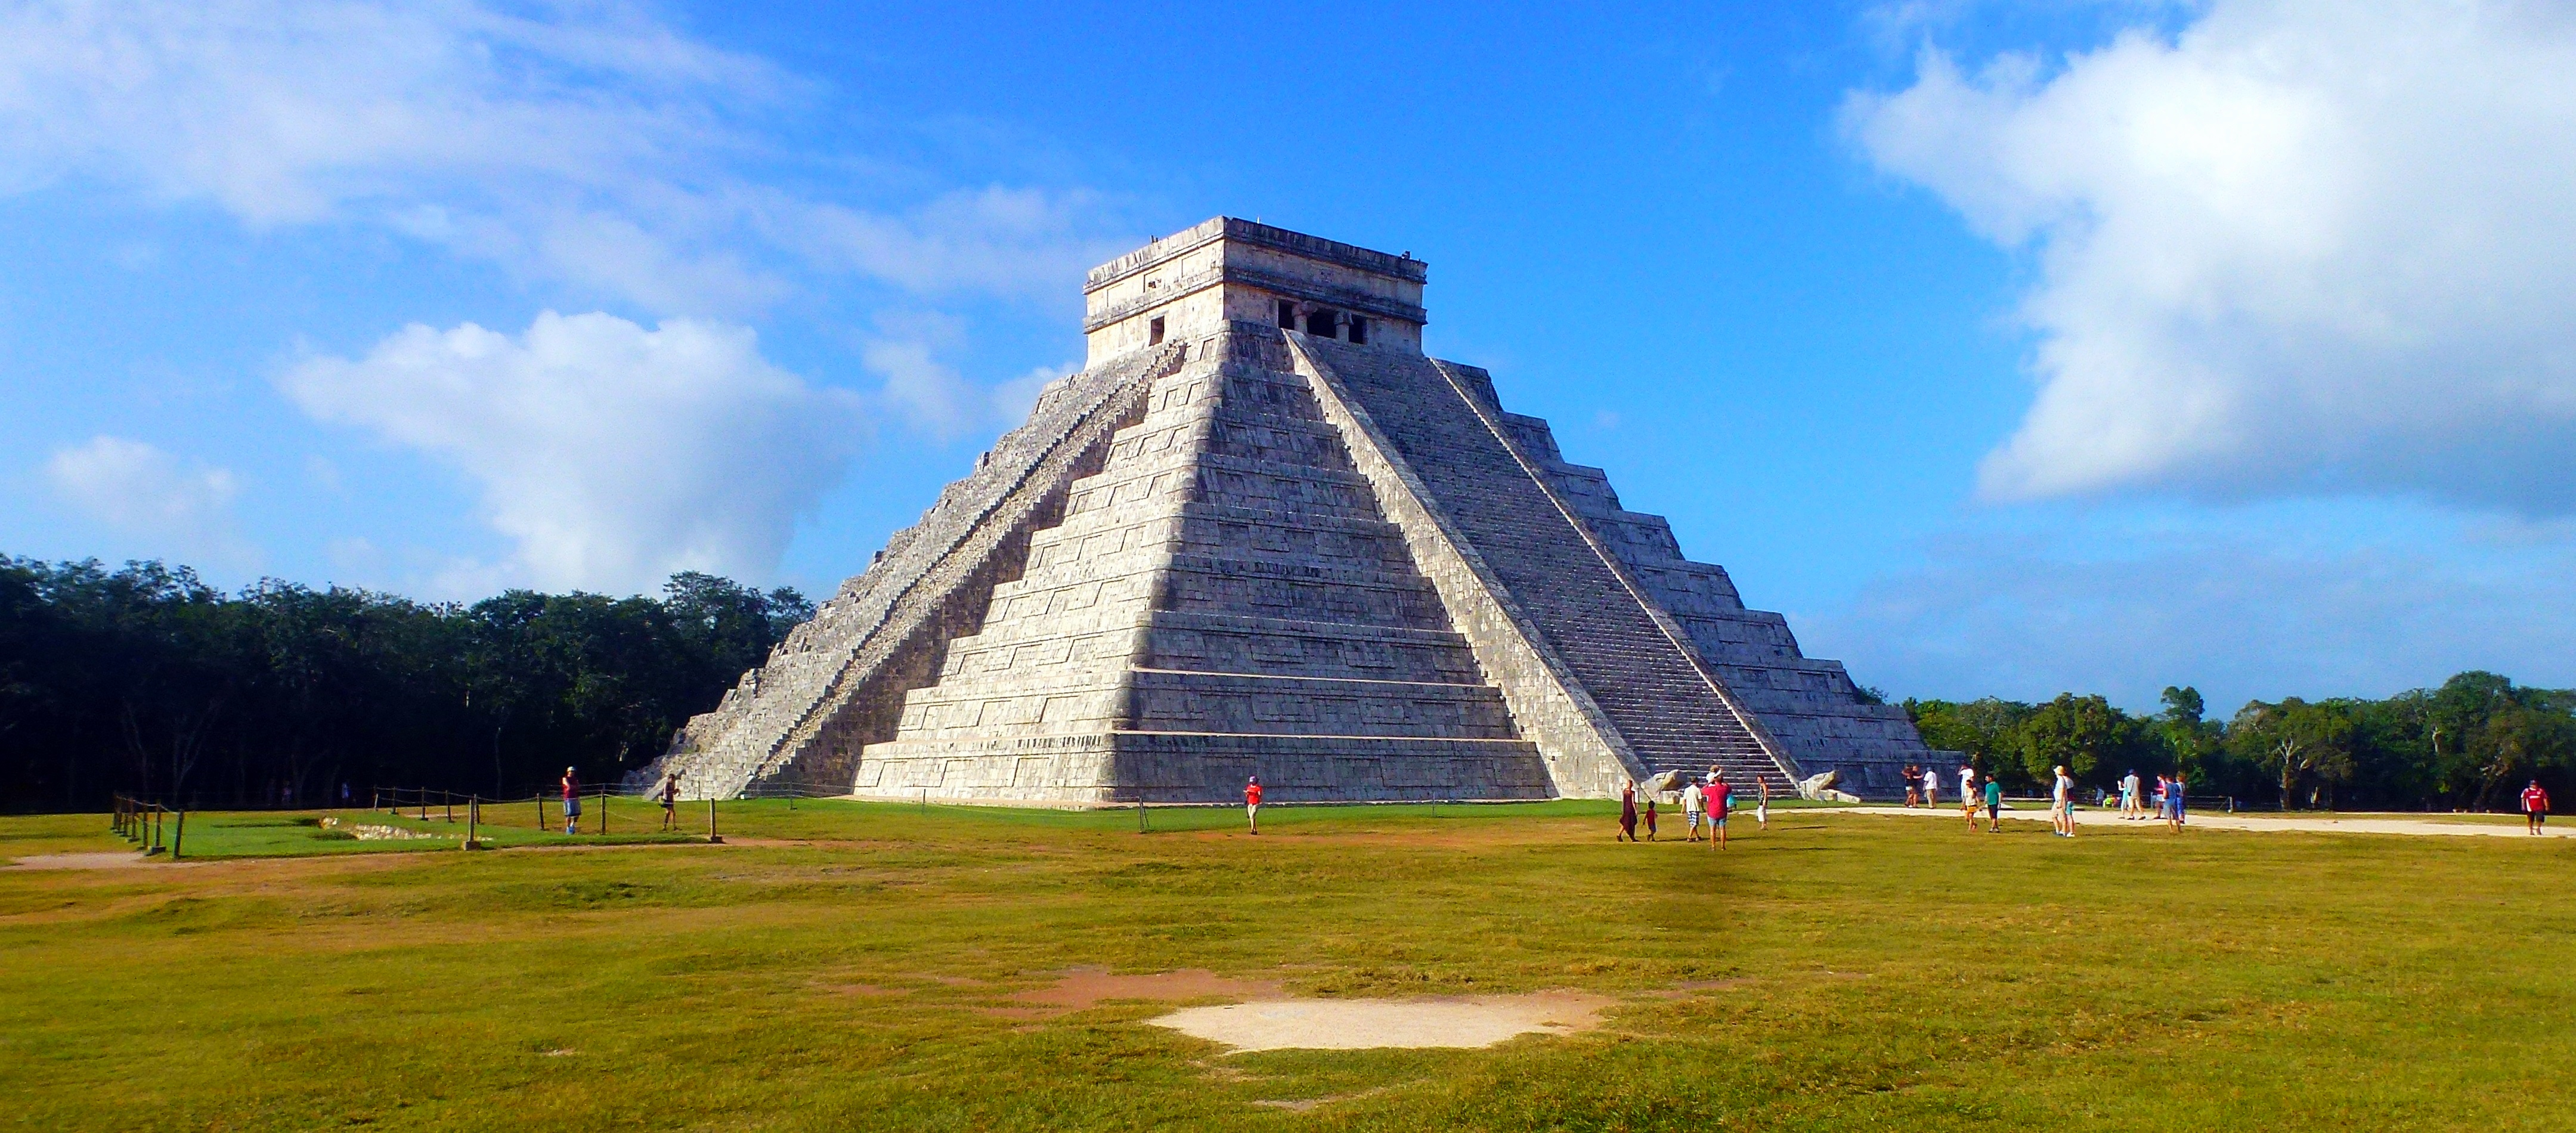 photo essays flying dutchman pat chichen itza is the most famous and best restored a site of yucatan this archaeological site excavated ruins of the large former a city